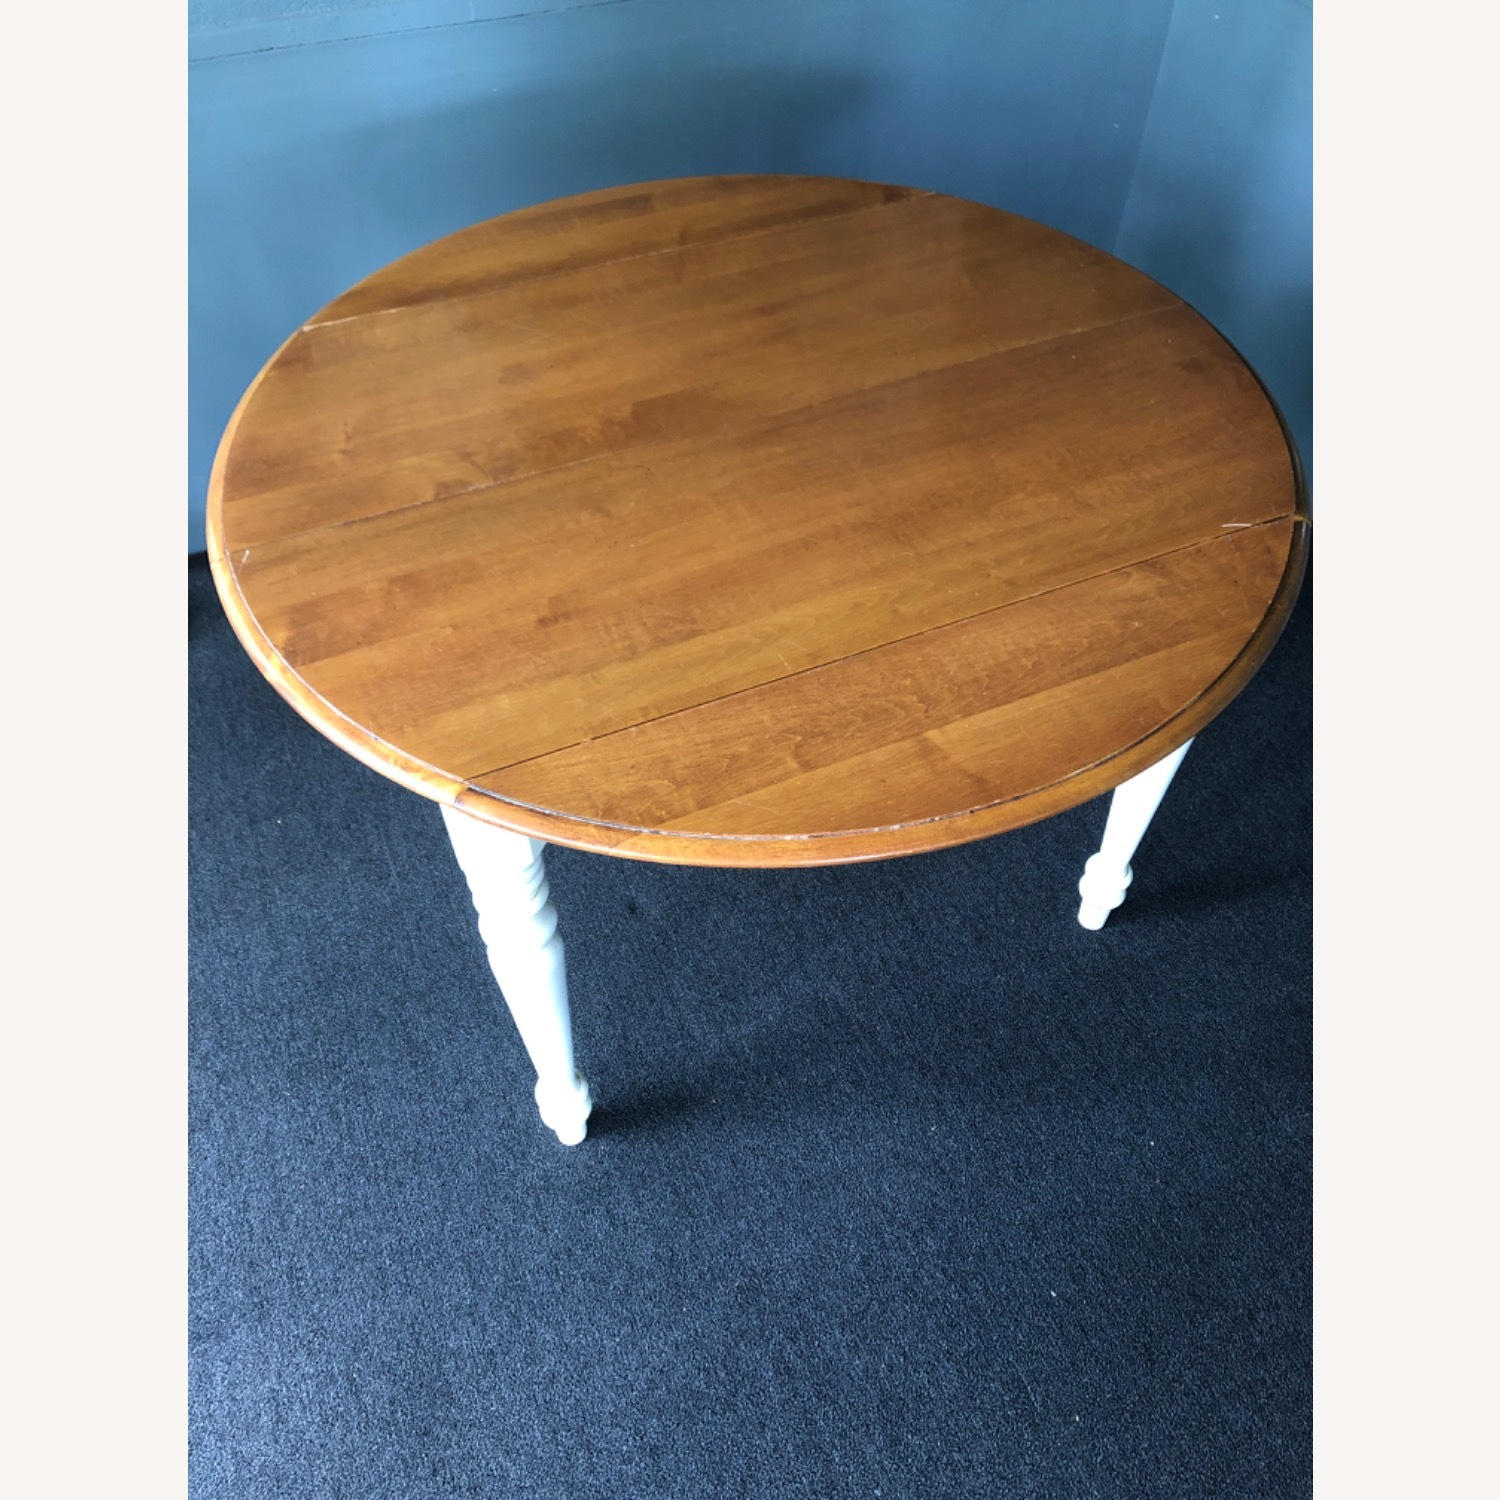 Ethan Allen Kitchen Table Round French Country - image-1